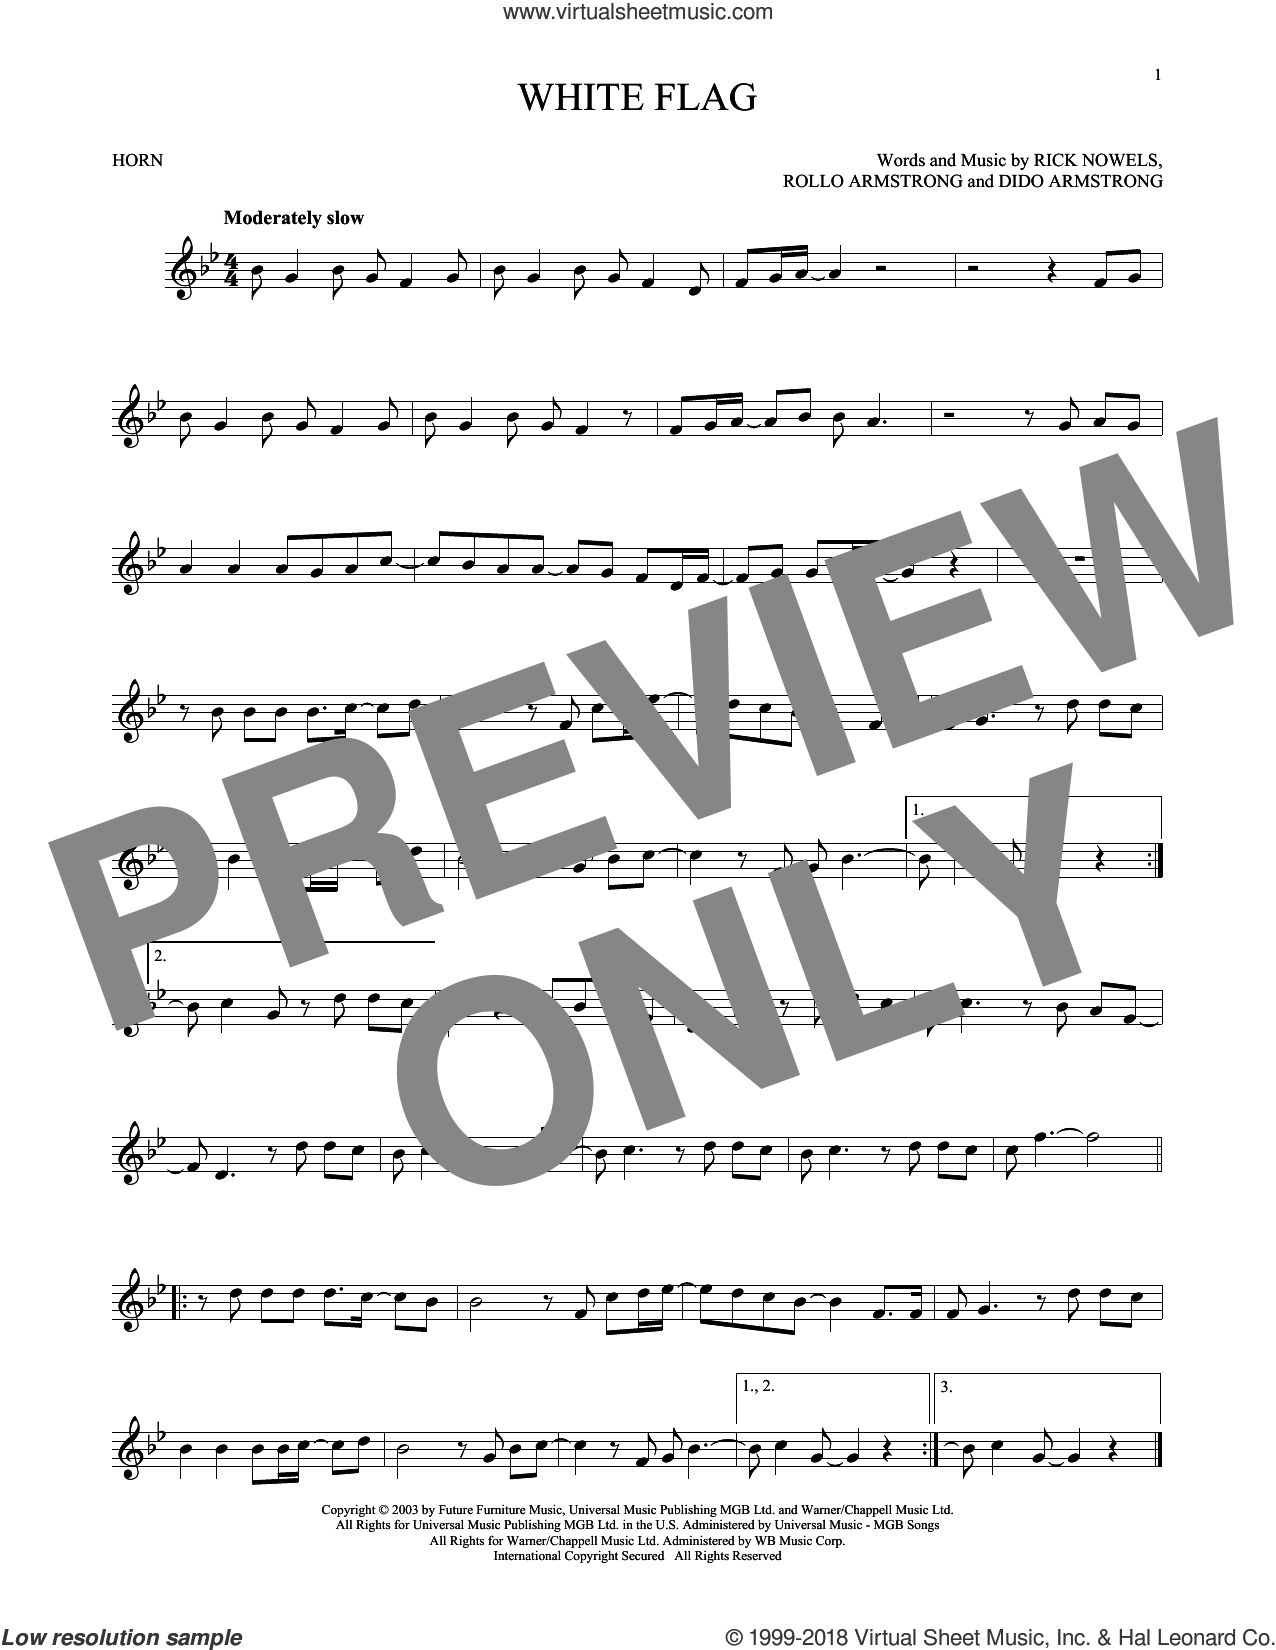 White Flag sheet music for horn solo by Dido Armstrong, Rick Nowels and Rollo Armstrong, intermediate skill level